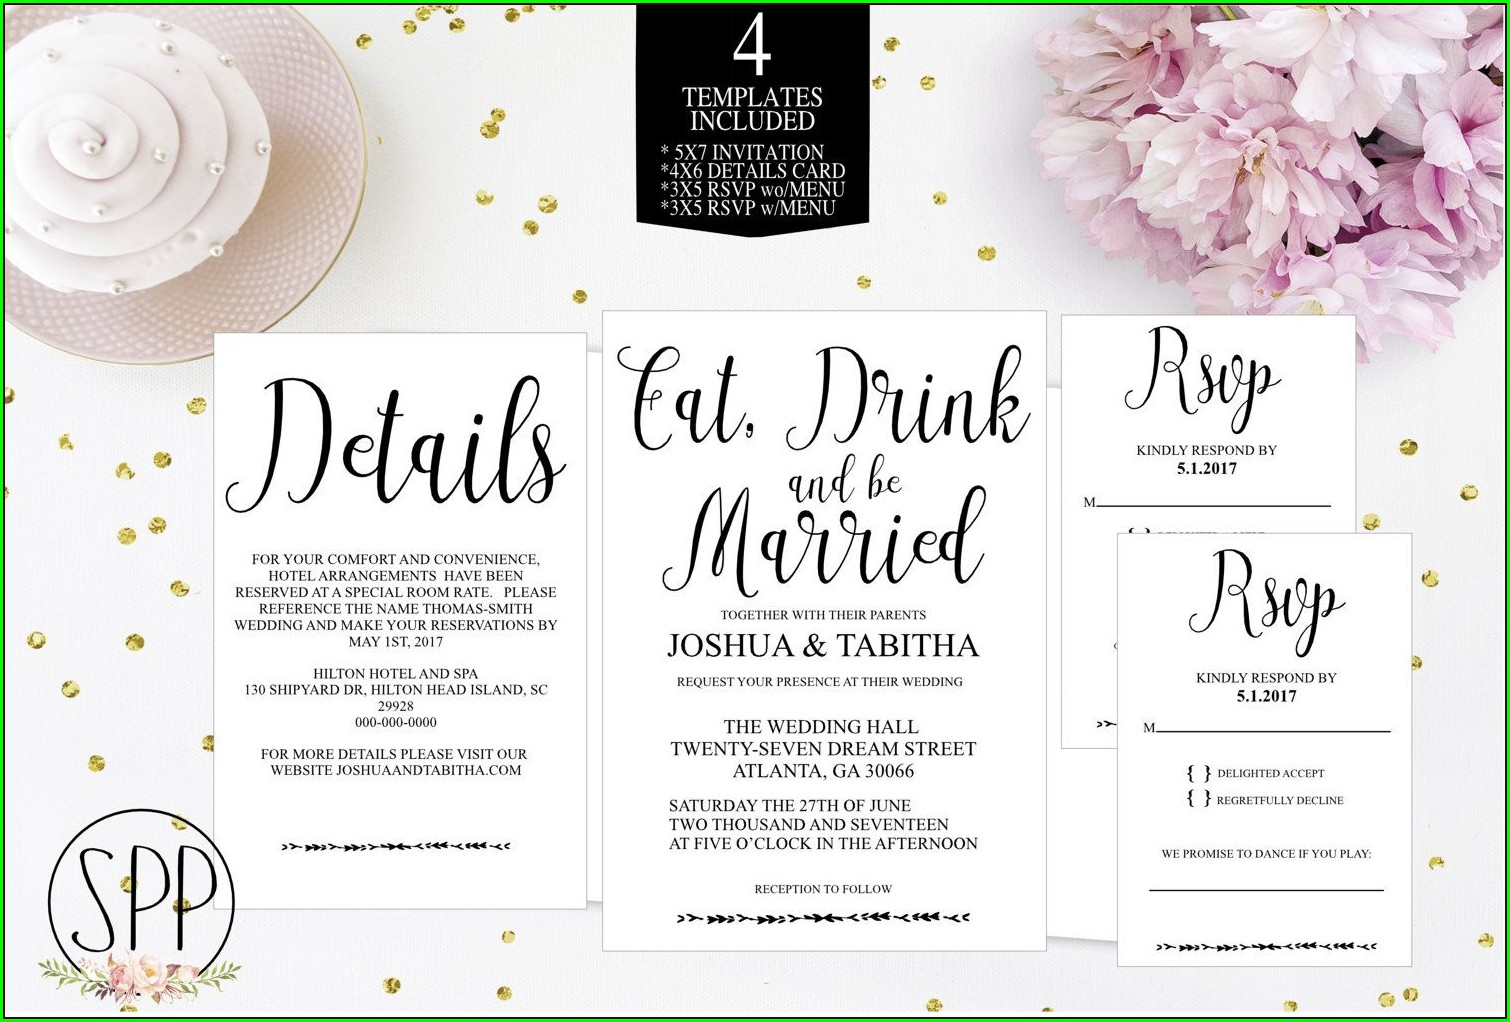 Eat Drink And Be Married Invitation Template